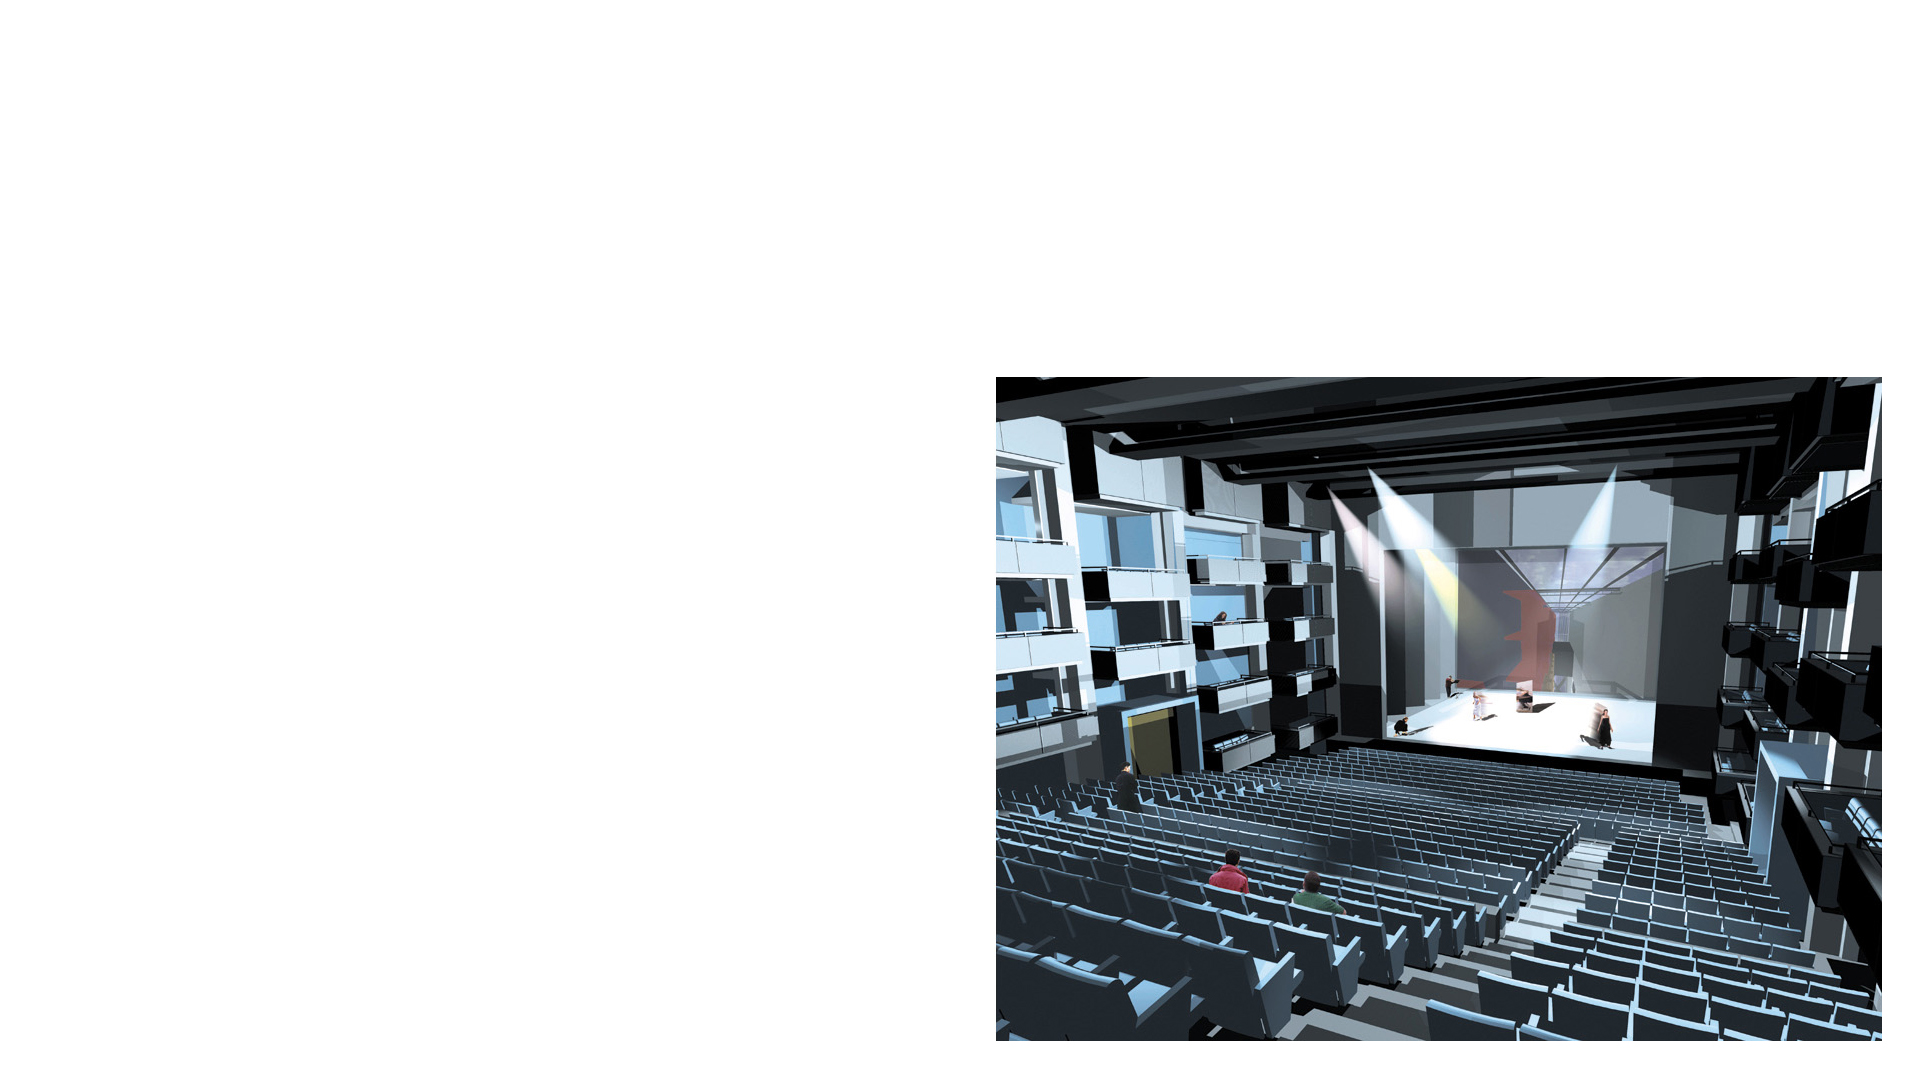 Composite rendering of the 1200 seat concert hall at the Centro Culturale di Torino